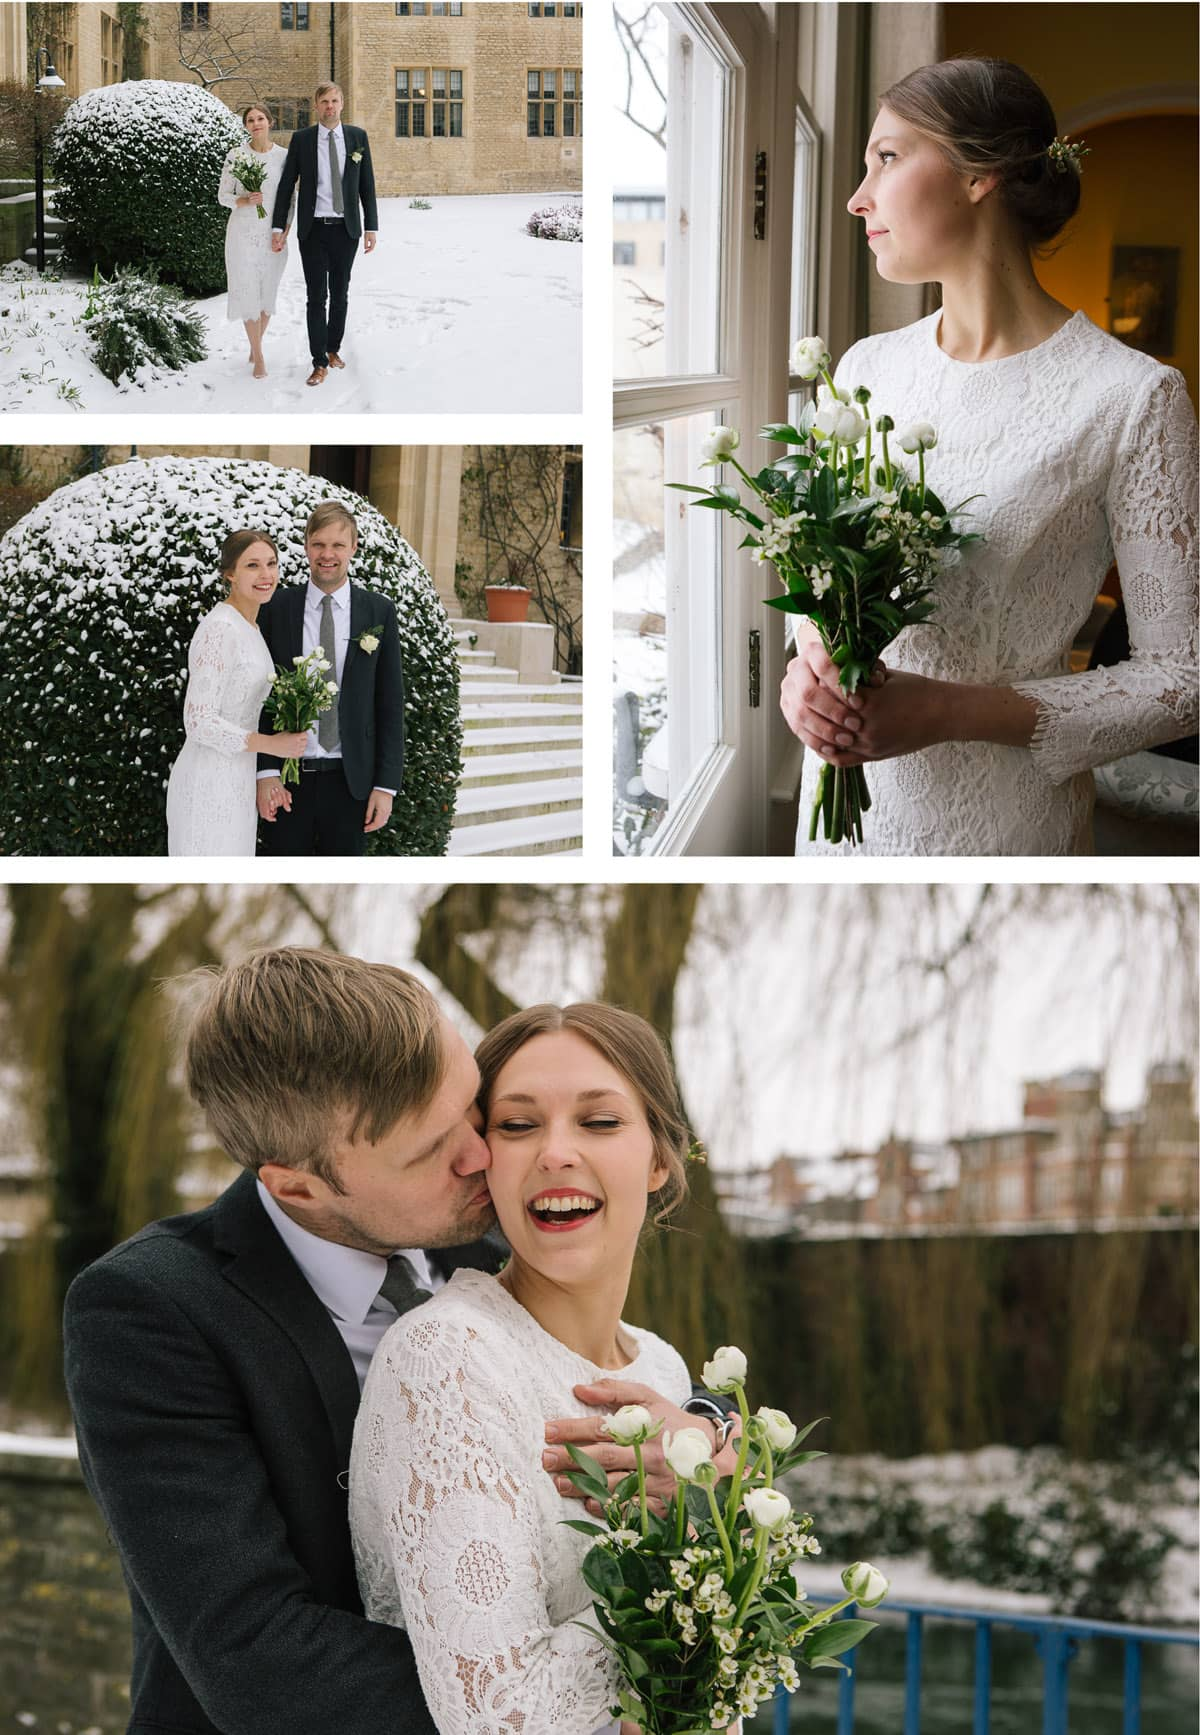 Collage of images of bride and groom at winter wedding in the snow